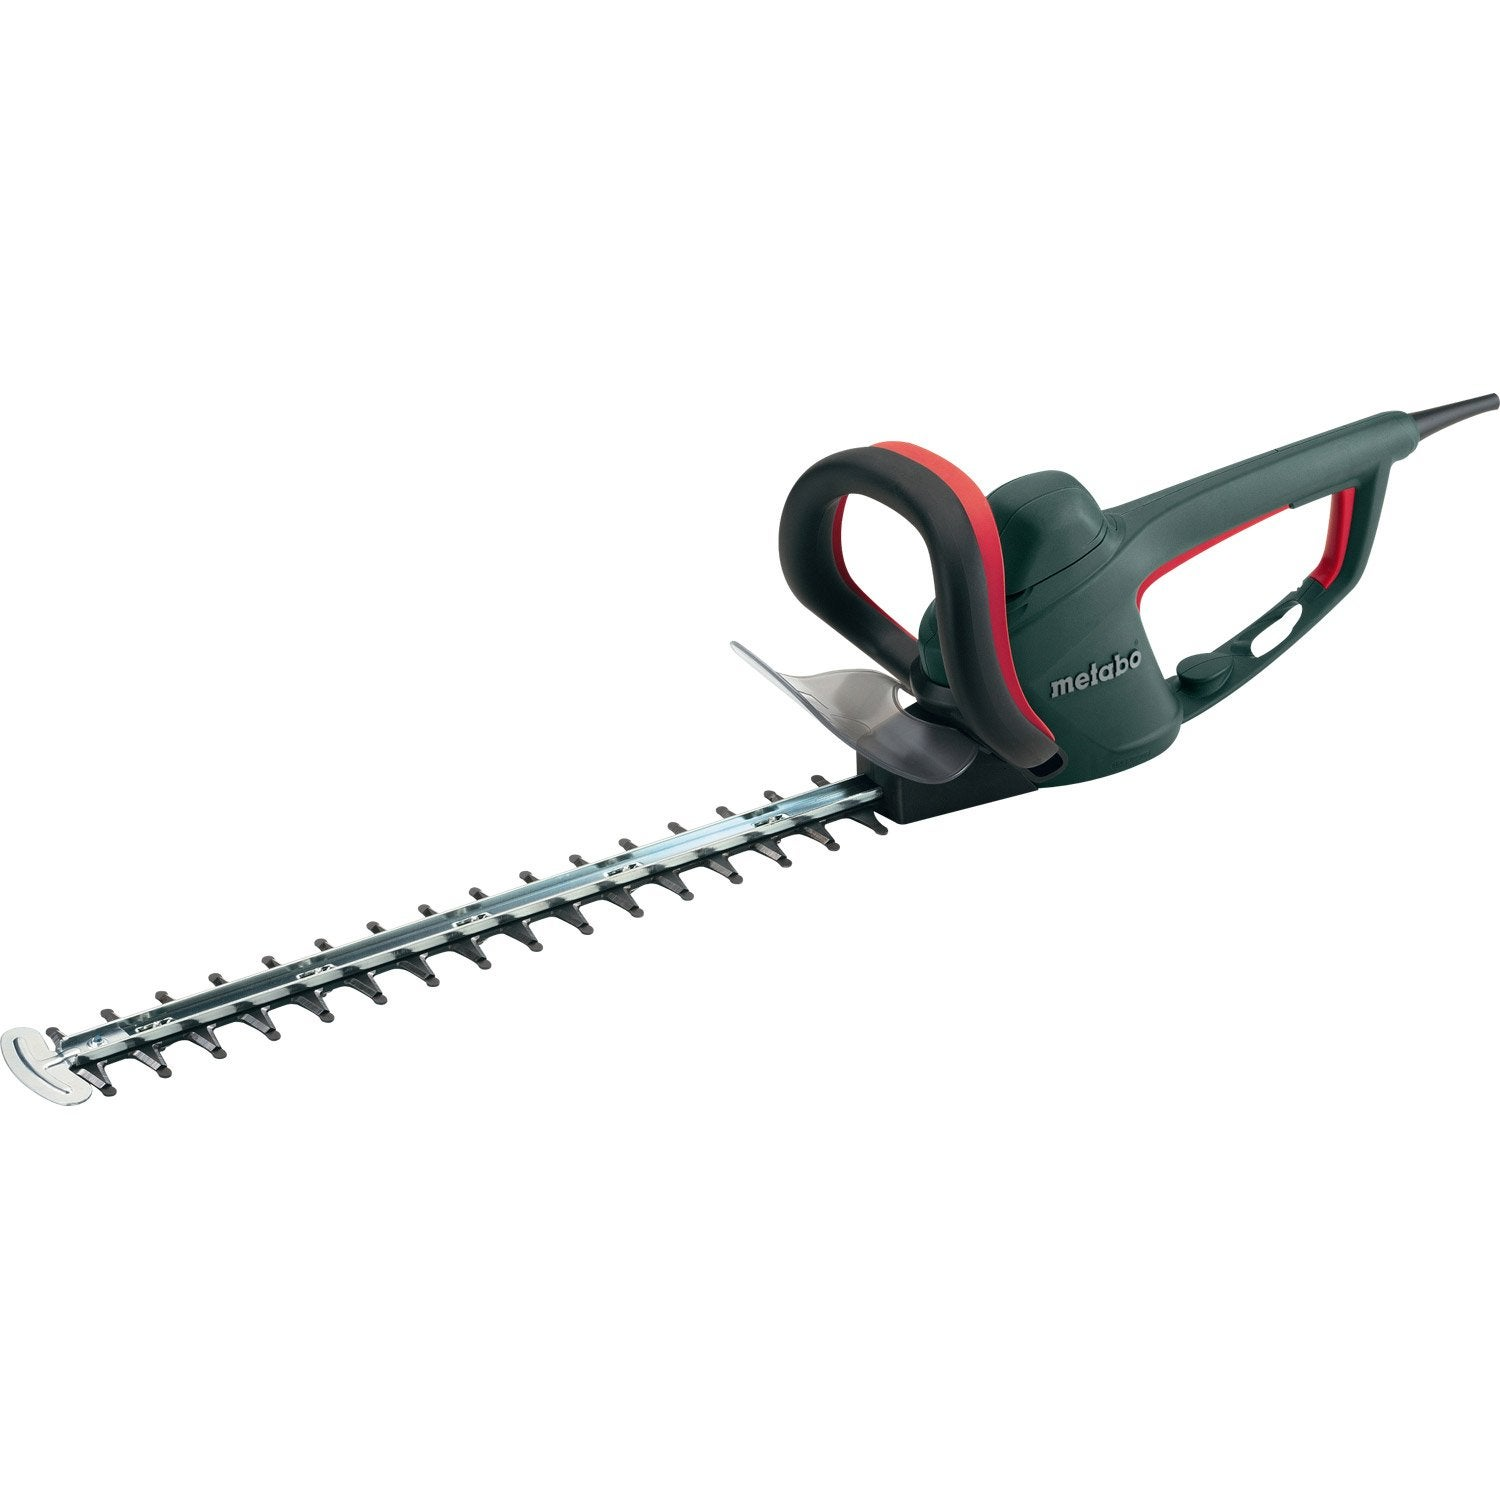 Taille haies lectrique hs 8765 metabo leroy merlin - Haies artificielles leroy merlin ...